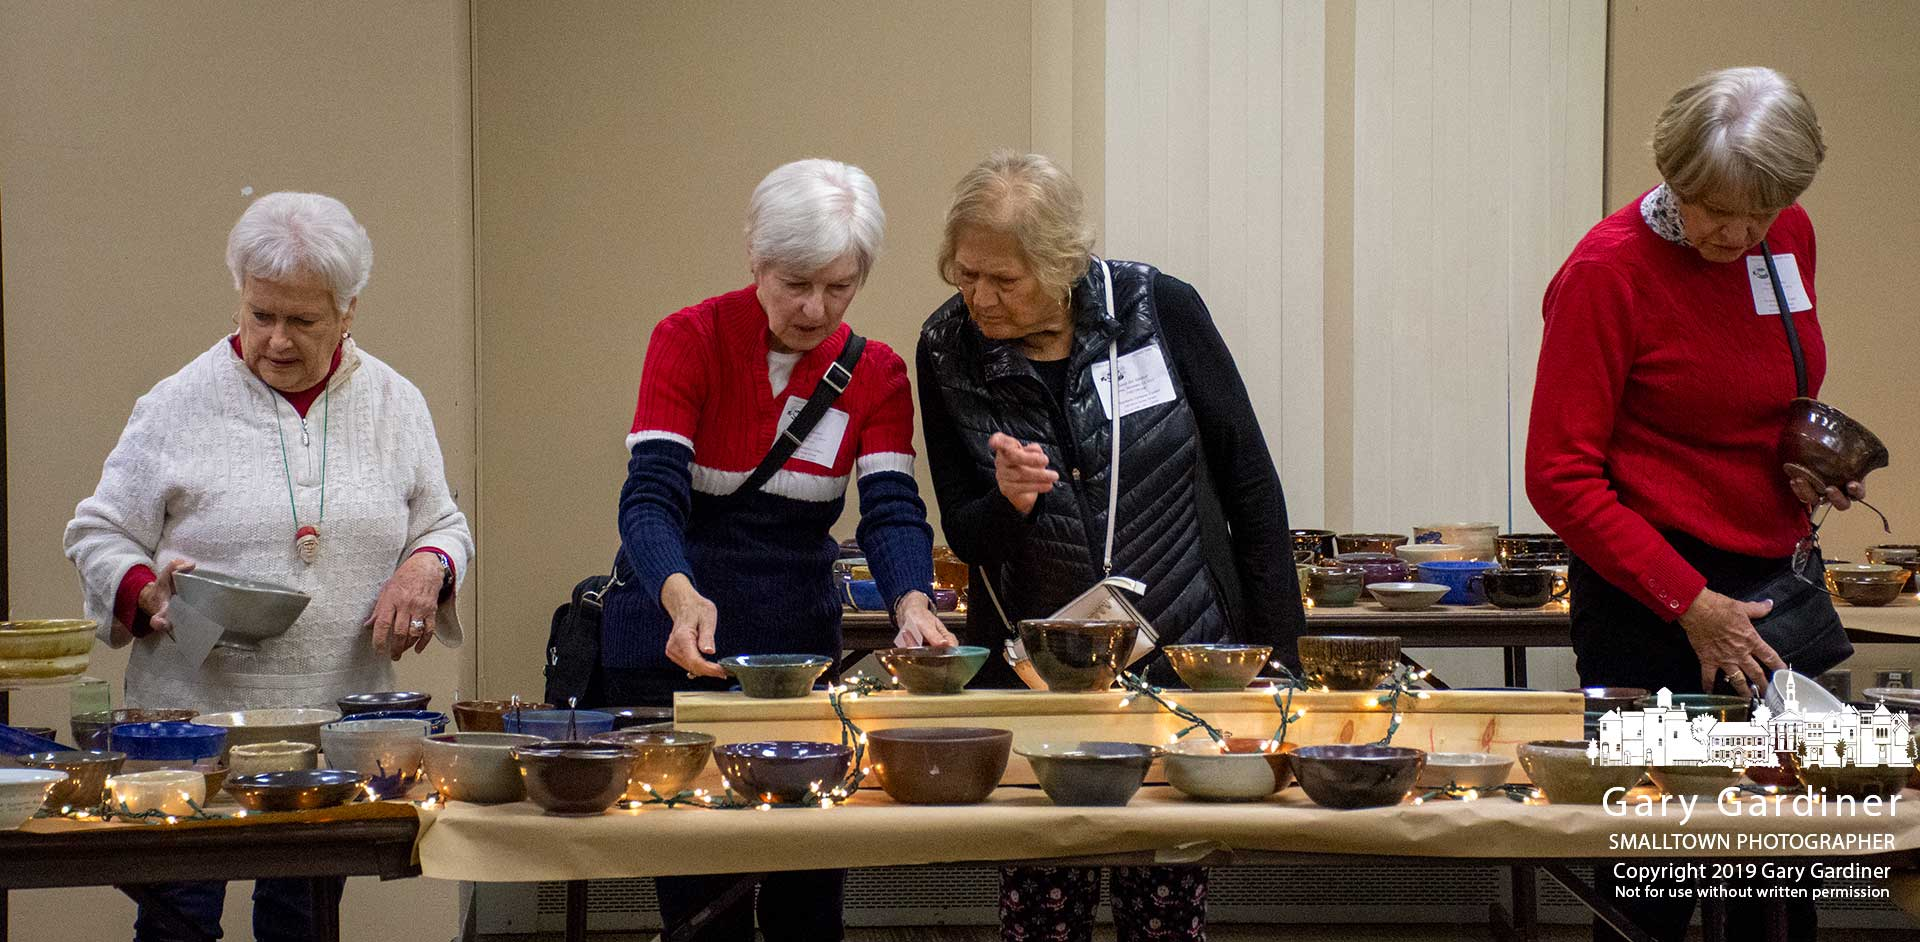 Four women make their selection of bowls at Habitat for Humanity's Soup for Shelter fundraiser at Otterbein University. My Final Photo for Dec. 13, 2019.